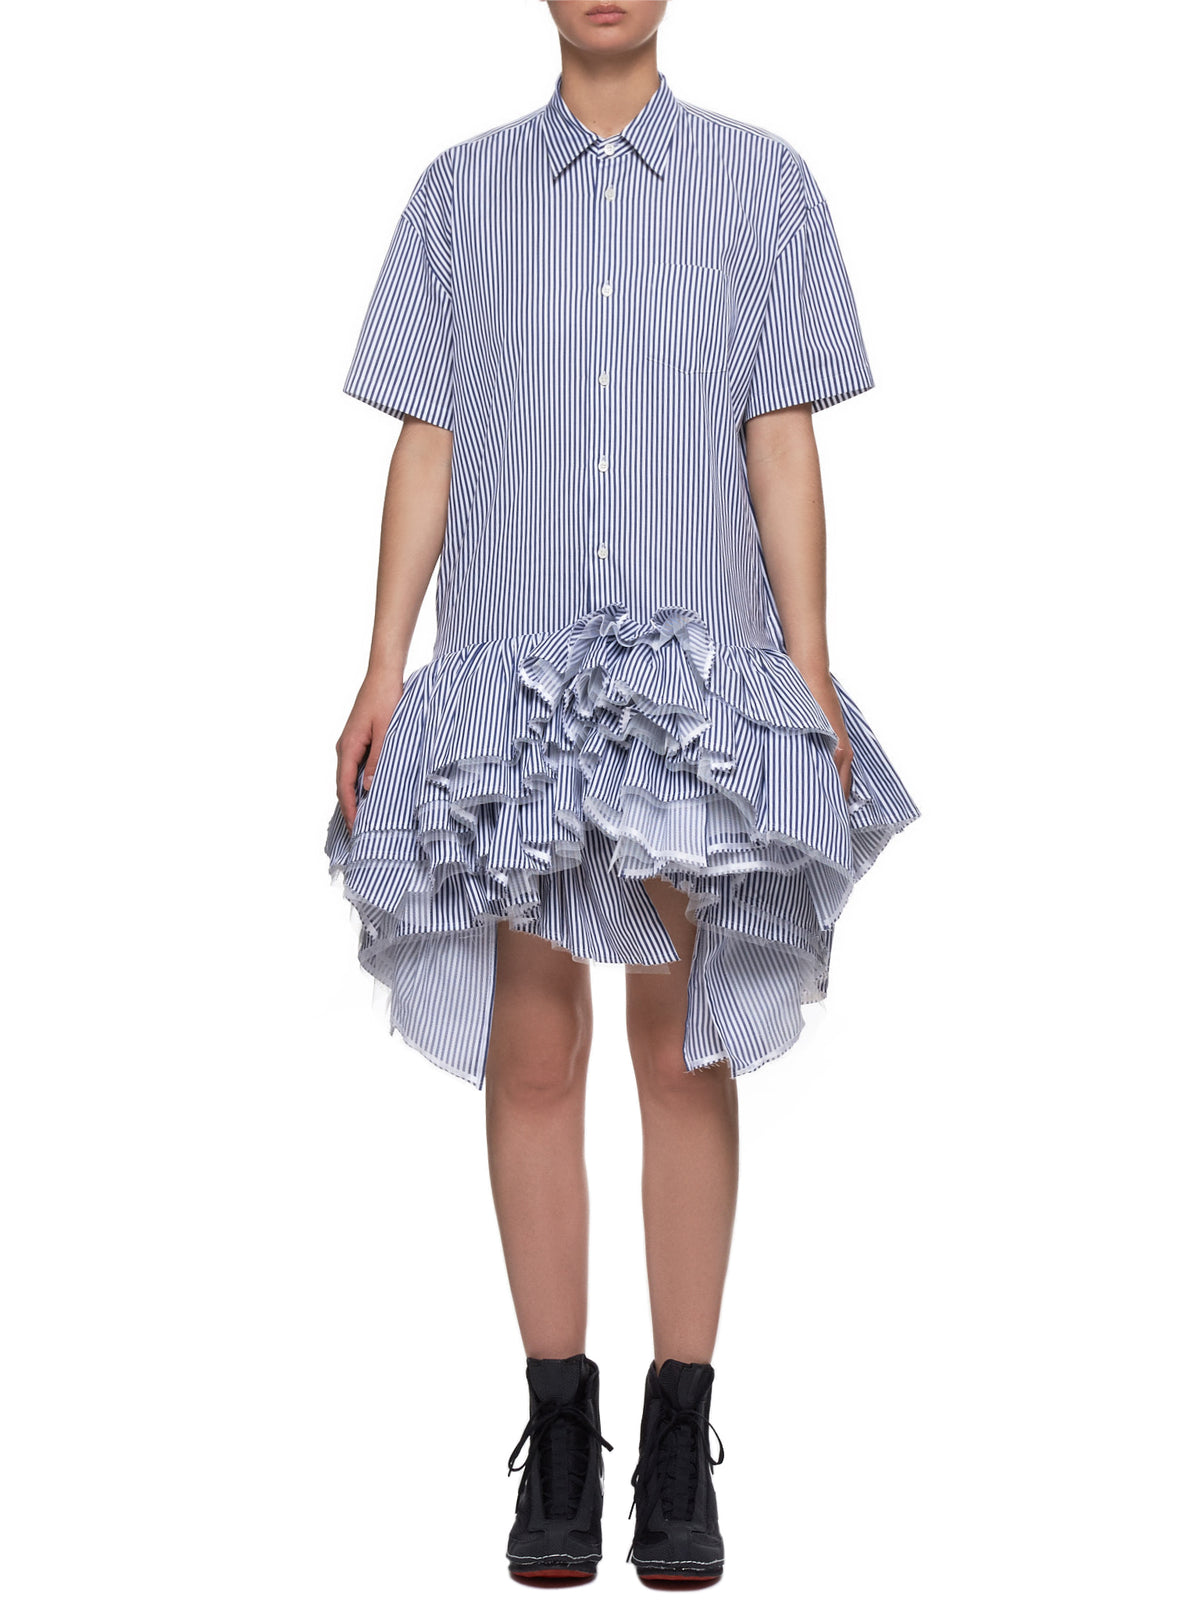 Tutu Dress (JC-O034-051-NAVY-WHITE)